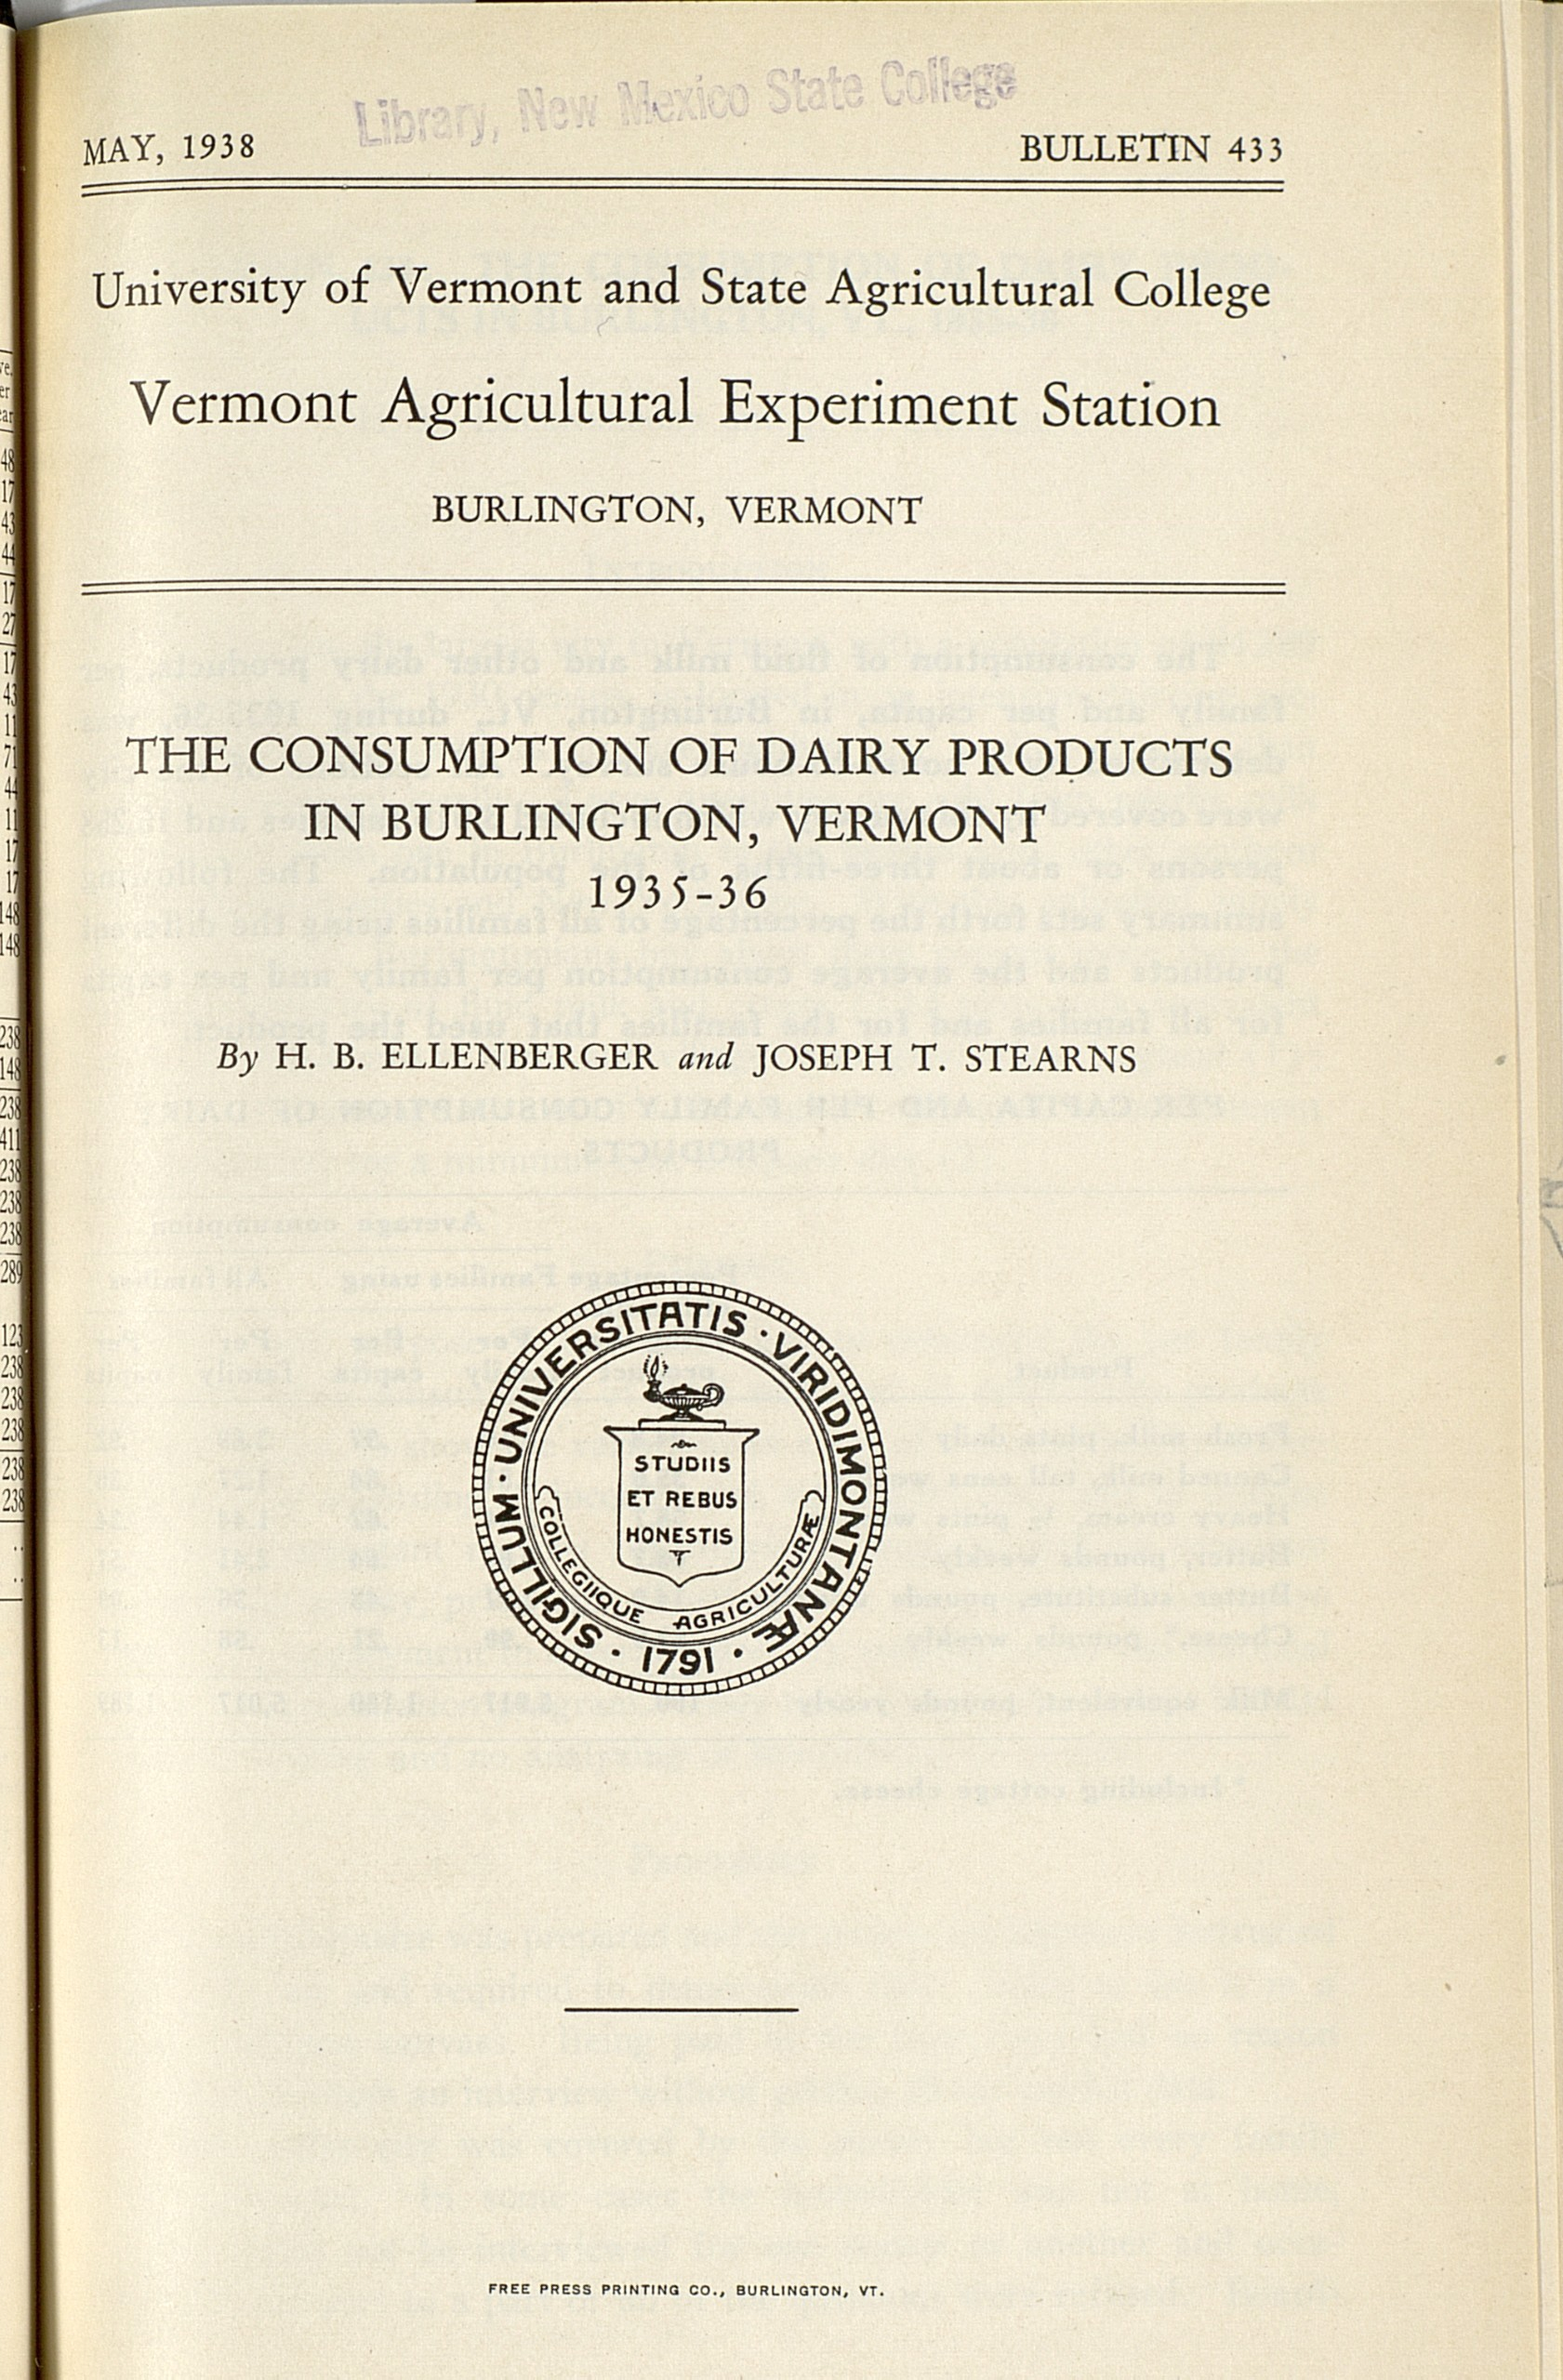 """Vermont Agricultural Experiment Station Bulletins, 426-450; """"The Consumption of Dairy Products in Burlington, VT: 1935-36"""""""